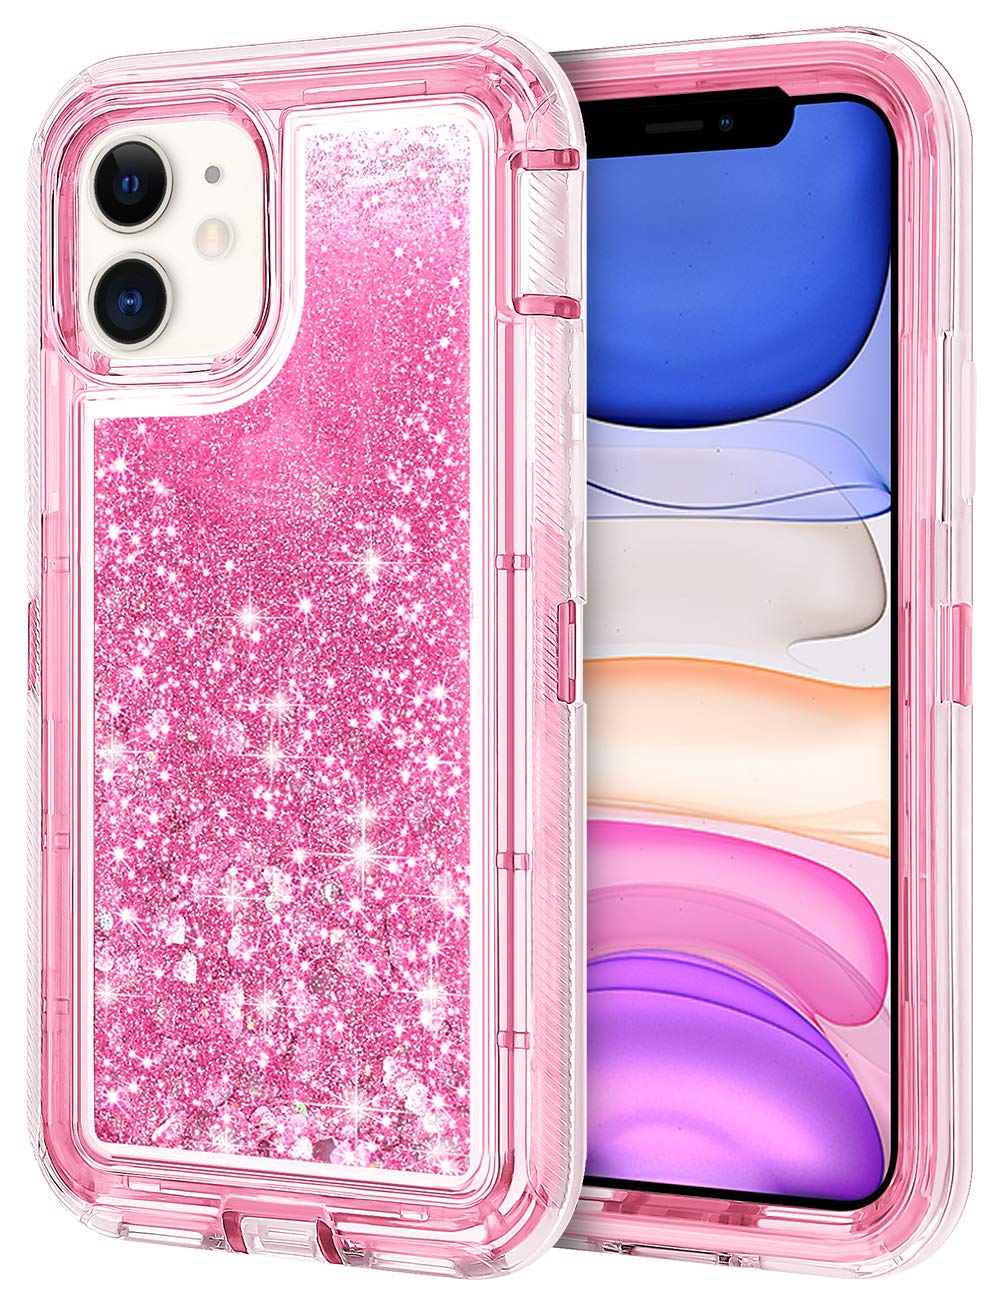 JAKPAK Case for iPhone 11 Case for Girls Women Glitter Sparkle iPhone 11 Case Heavy Duty Shockproof Protective Shell with Dual Layer Hard PC Bumper TPU Back Cover for iPhone 11 6.1 inches Pink